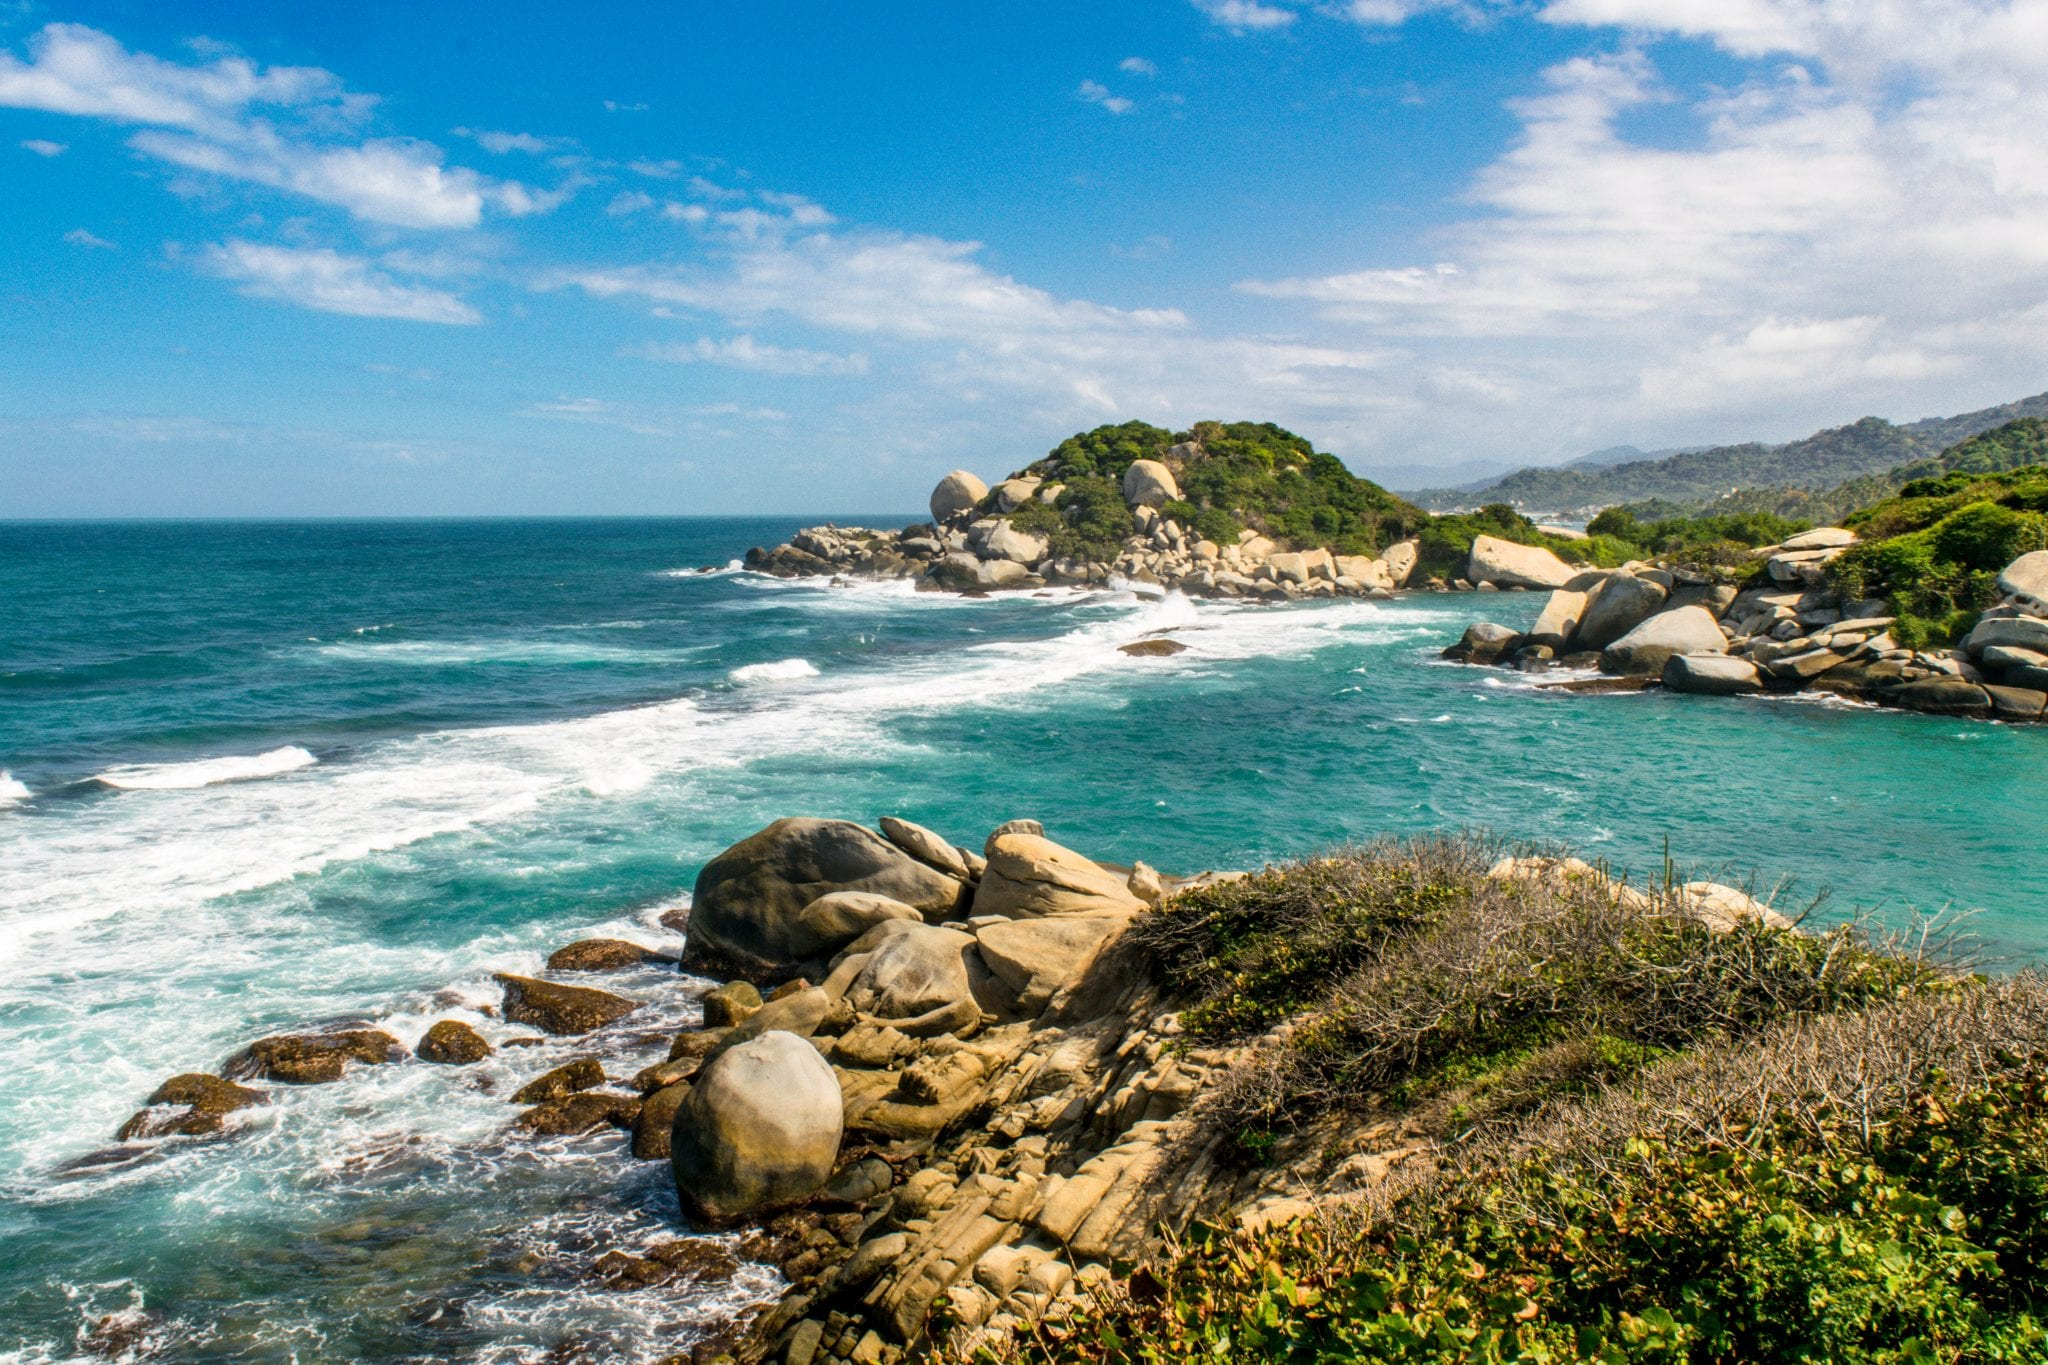 view of the water in tayrona national park colombia, as seen when living out of a backpack